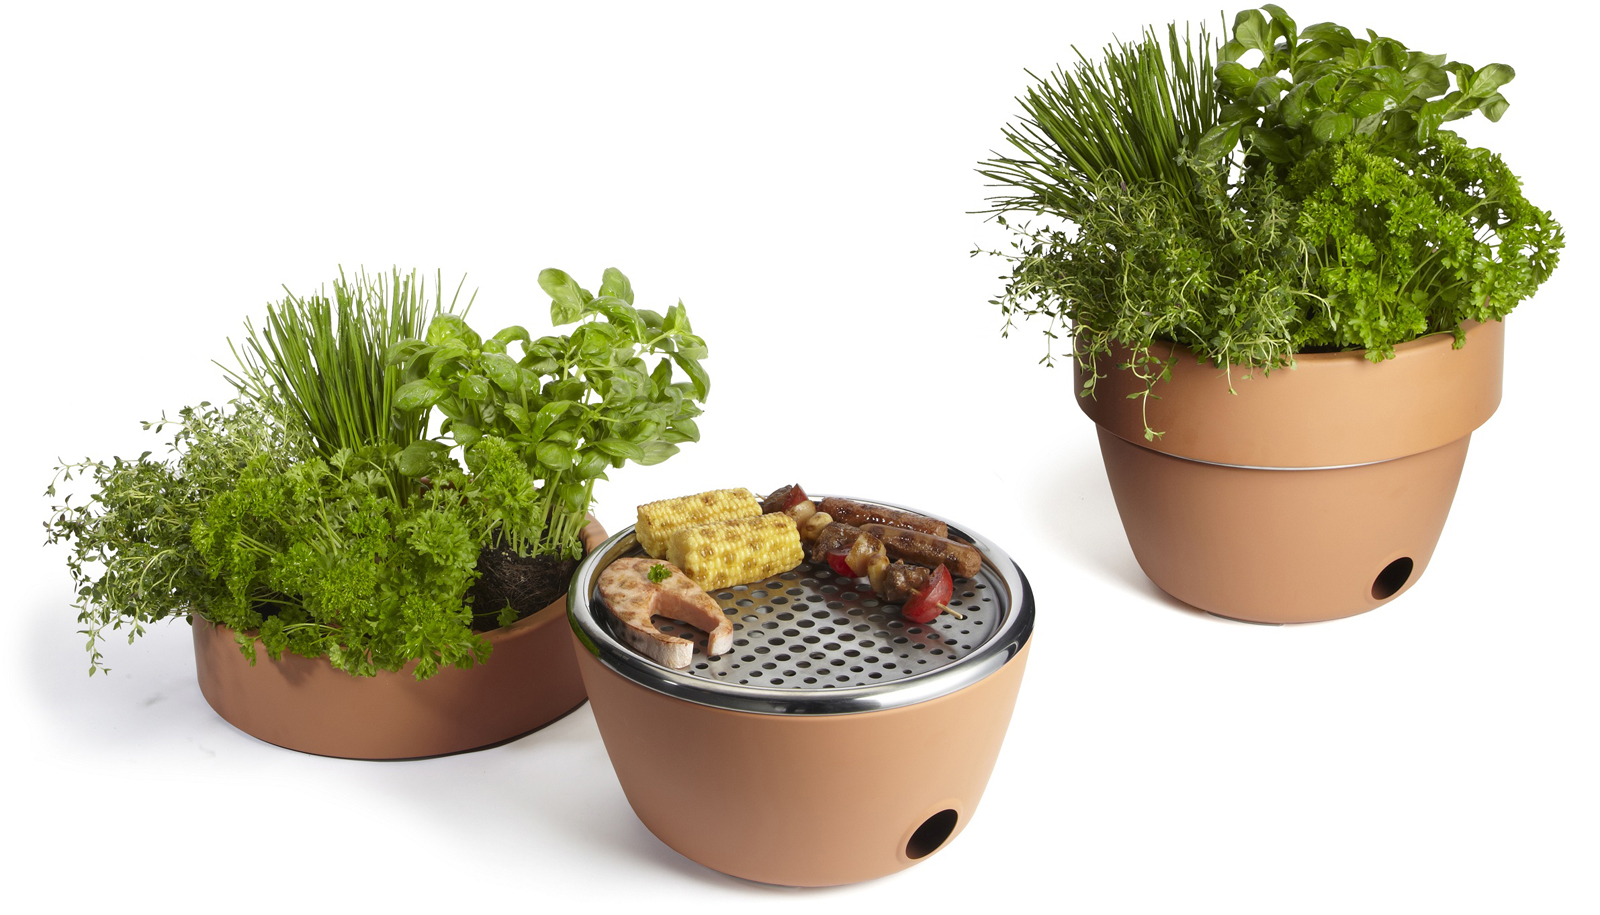 "One of the most recent products from Black+Blum is its <a href=""http://www.dwell.com/products/hot-pot-bbq.html"">Hot Pot BBQ</a>. The terracotta herb pot doubles up as a mini grill."